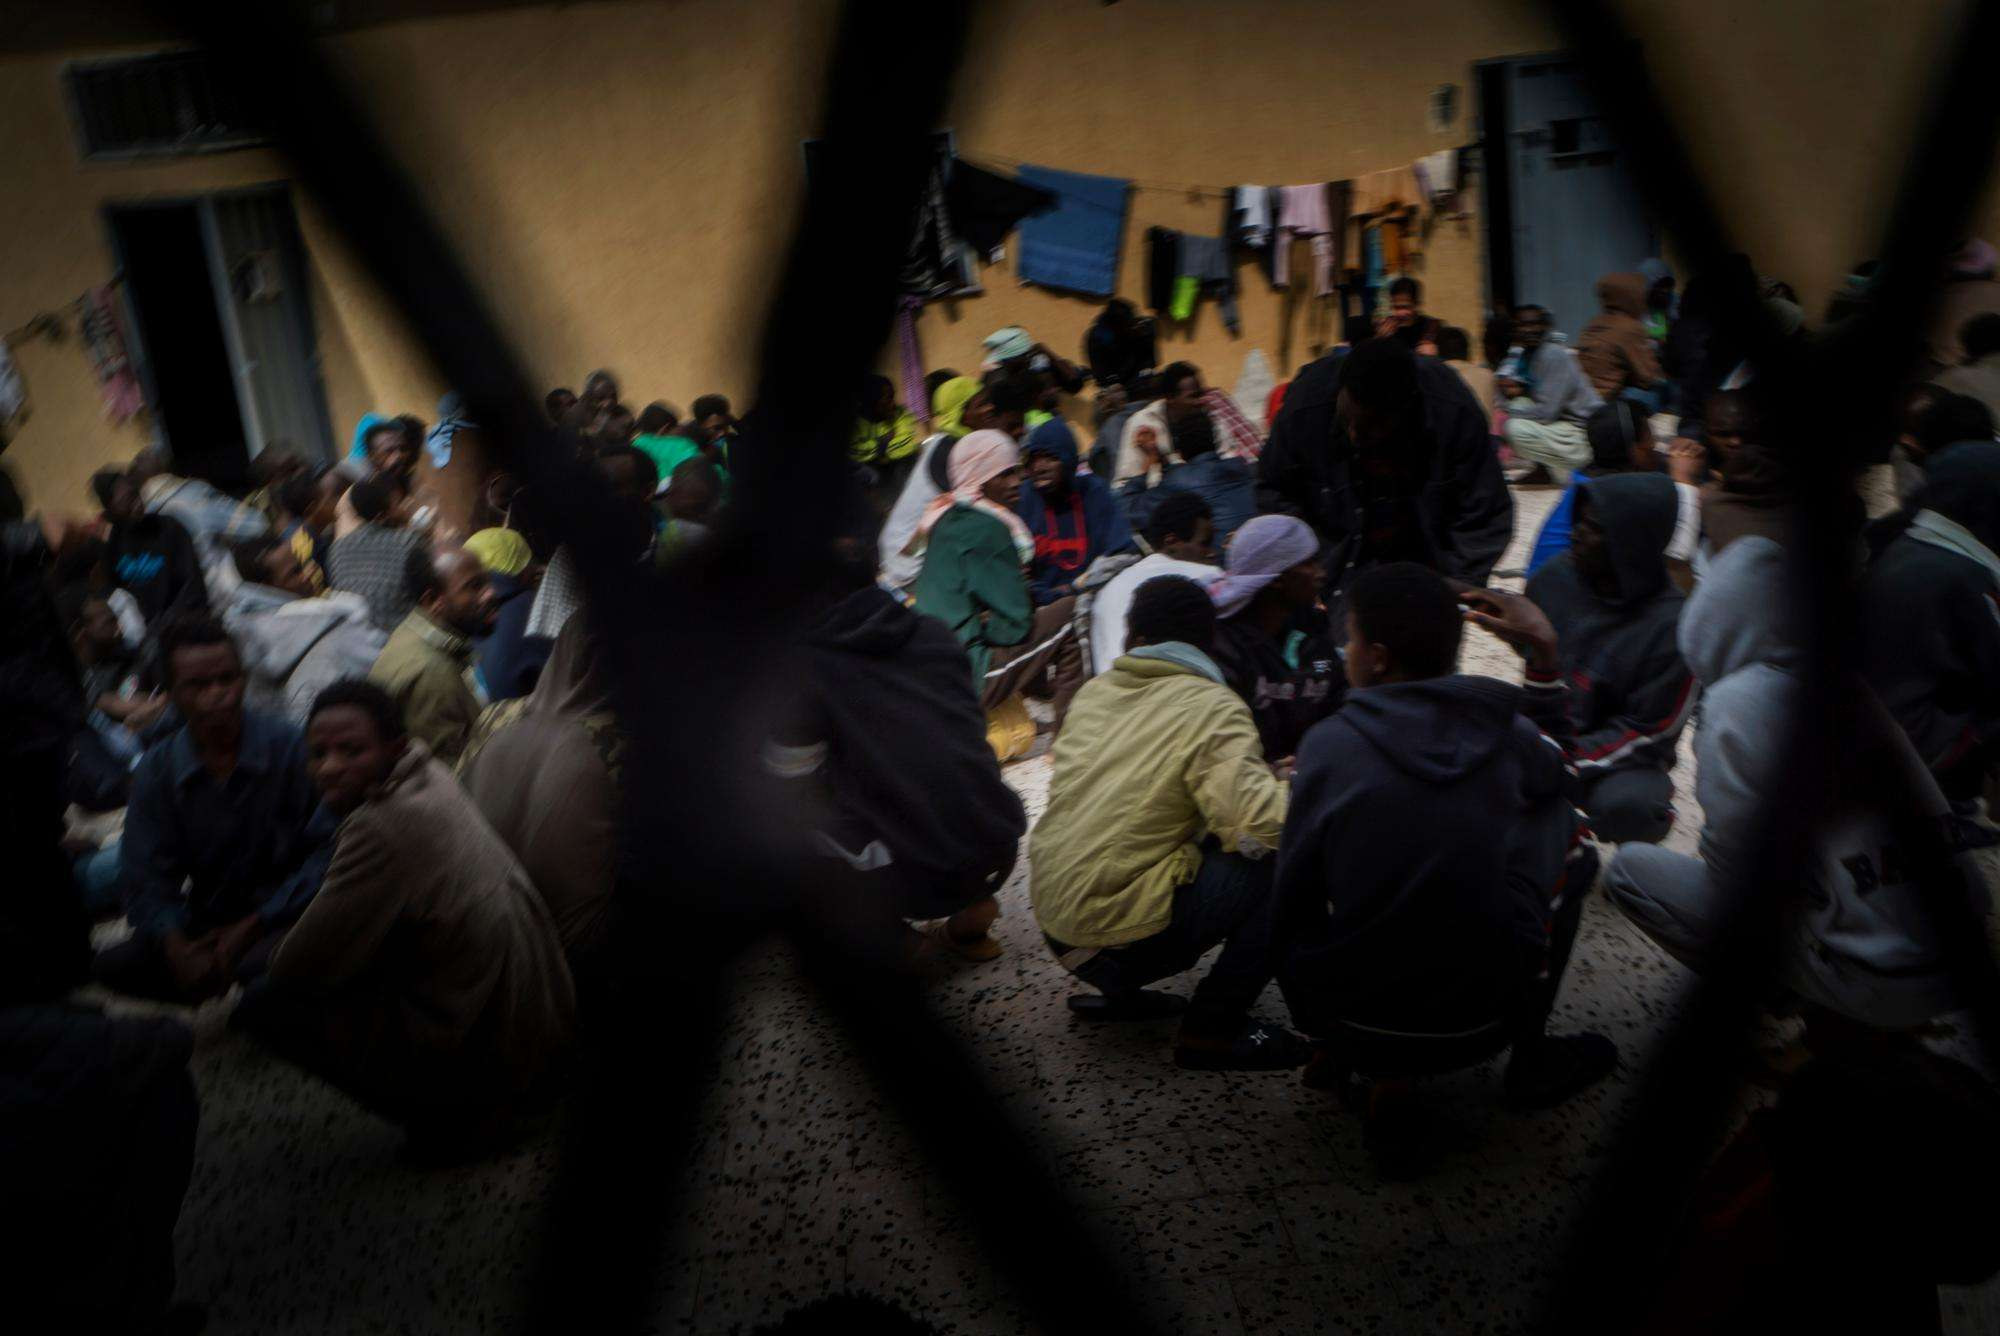 Euro-Med Monitor Seriously Concerned About Inhumane Conditions of Irish Direct Provision Centres